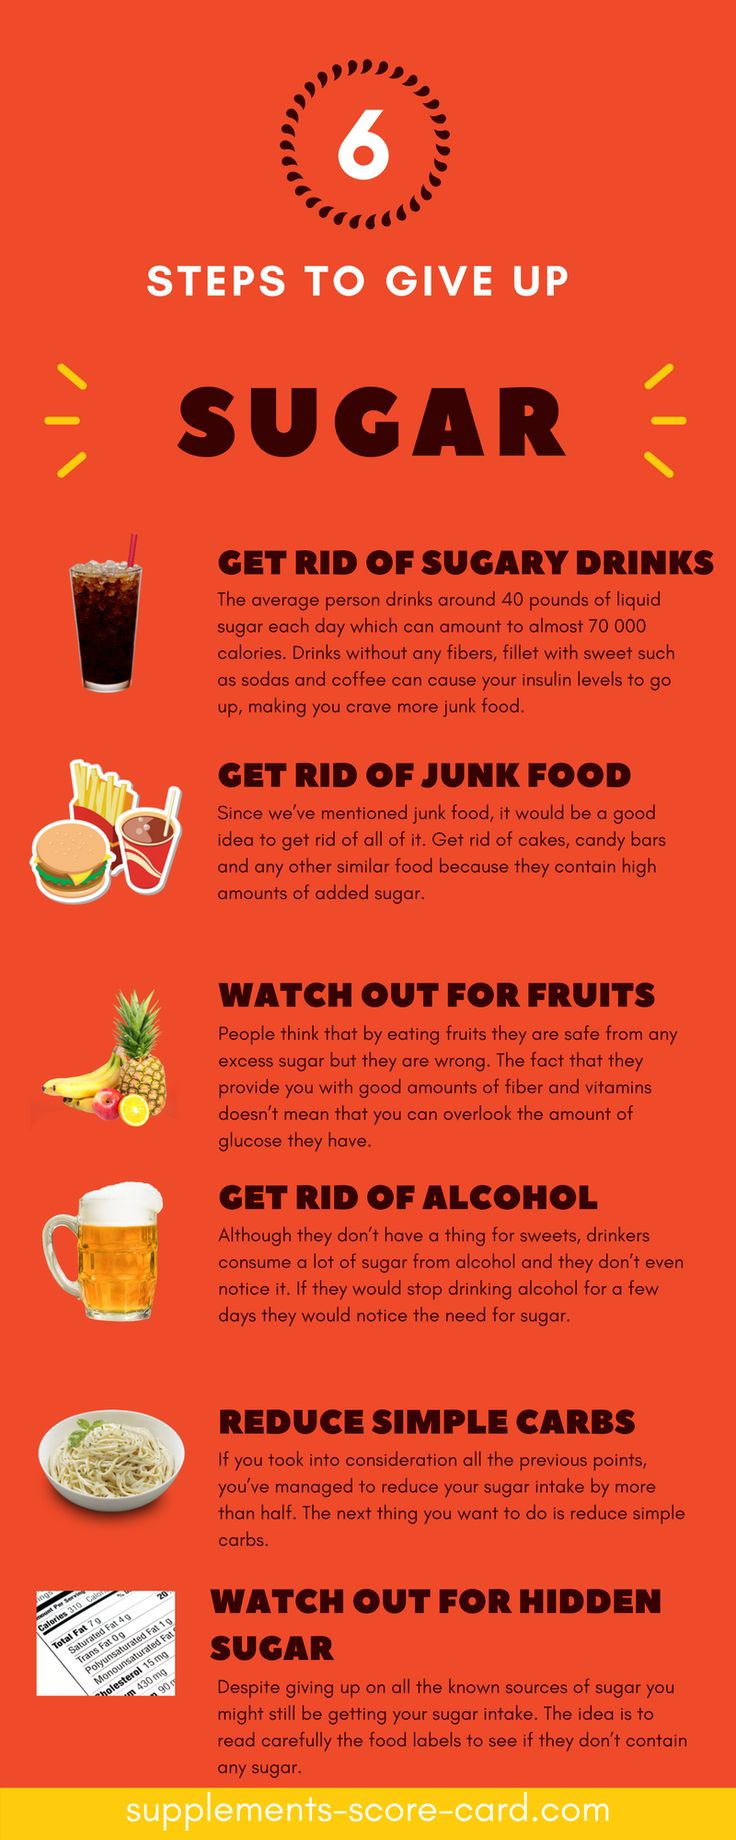 6 Steps to Give Up Sugar